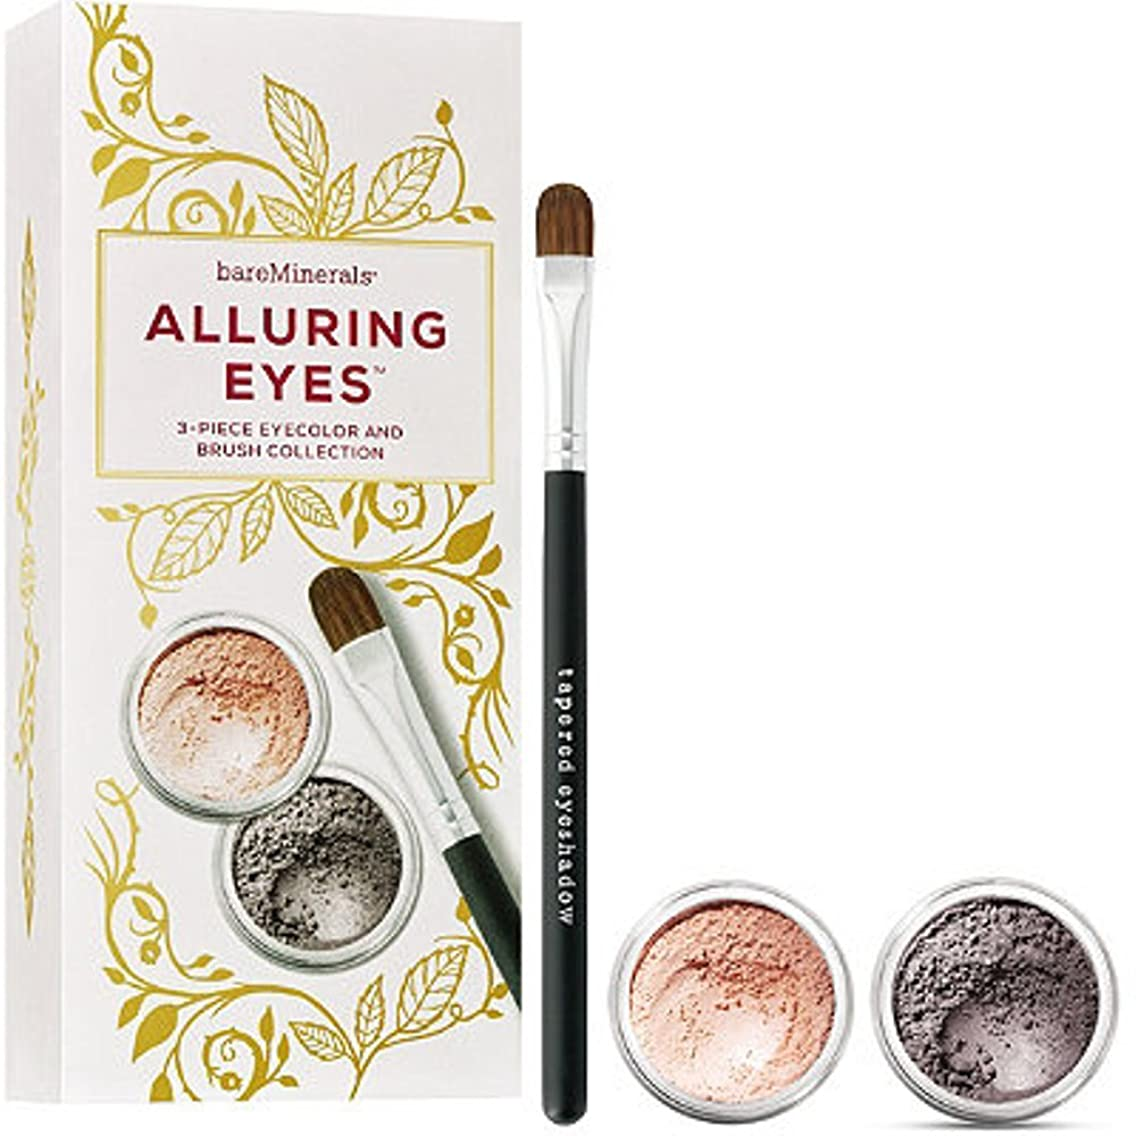 bareMinerals Alluring Eyes 3 Piece Eyecolor & Brush Collection